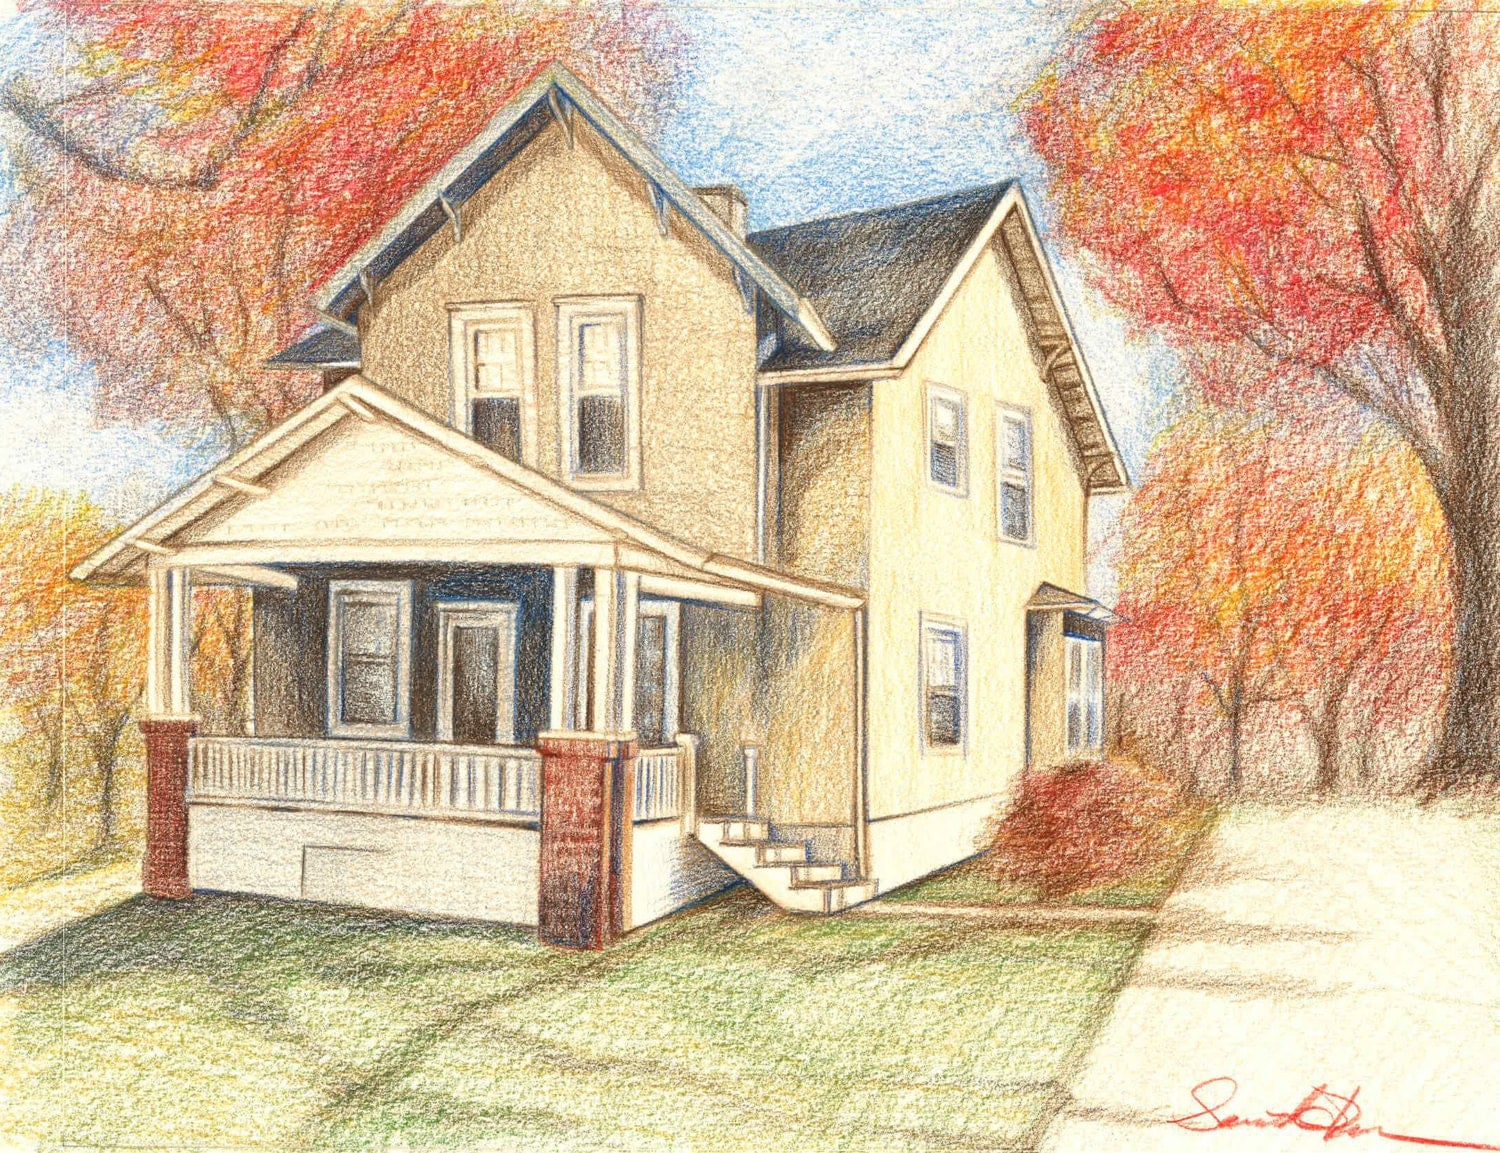 House drawing colored pencil drawing house art by samanthafarrar Draw your house